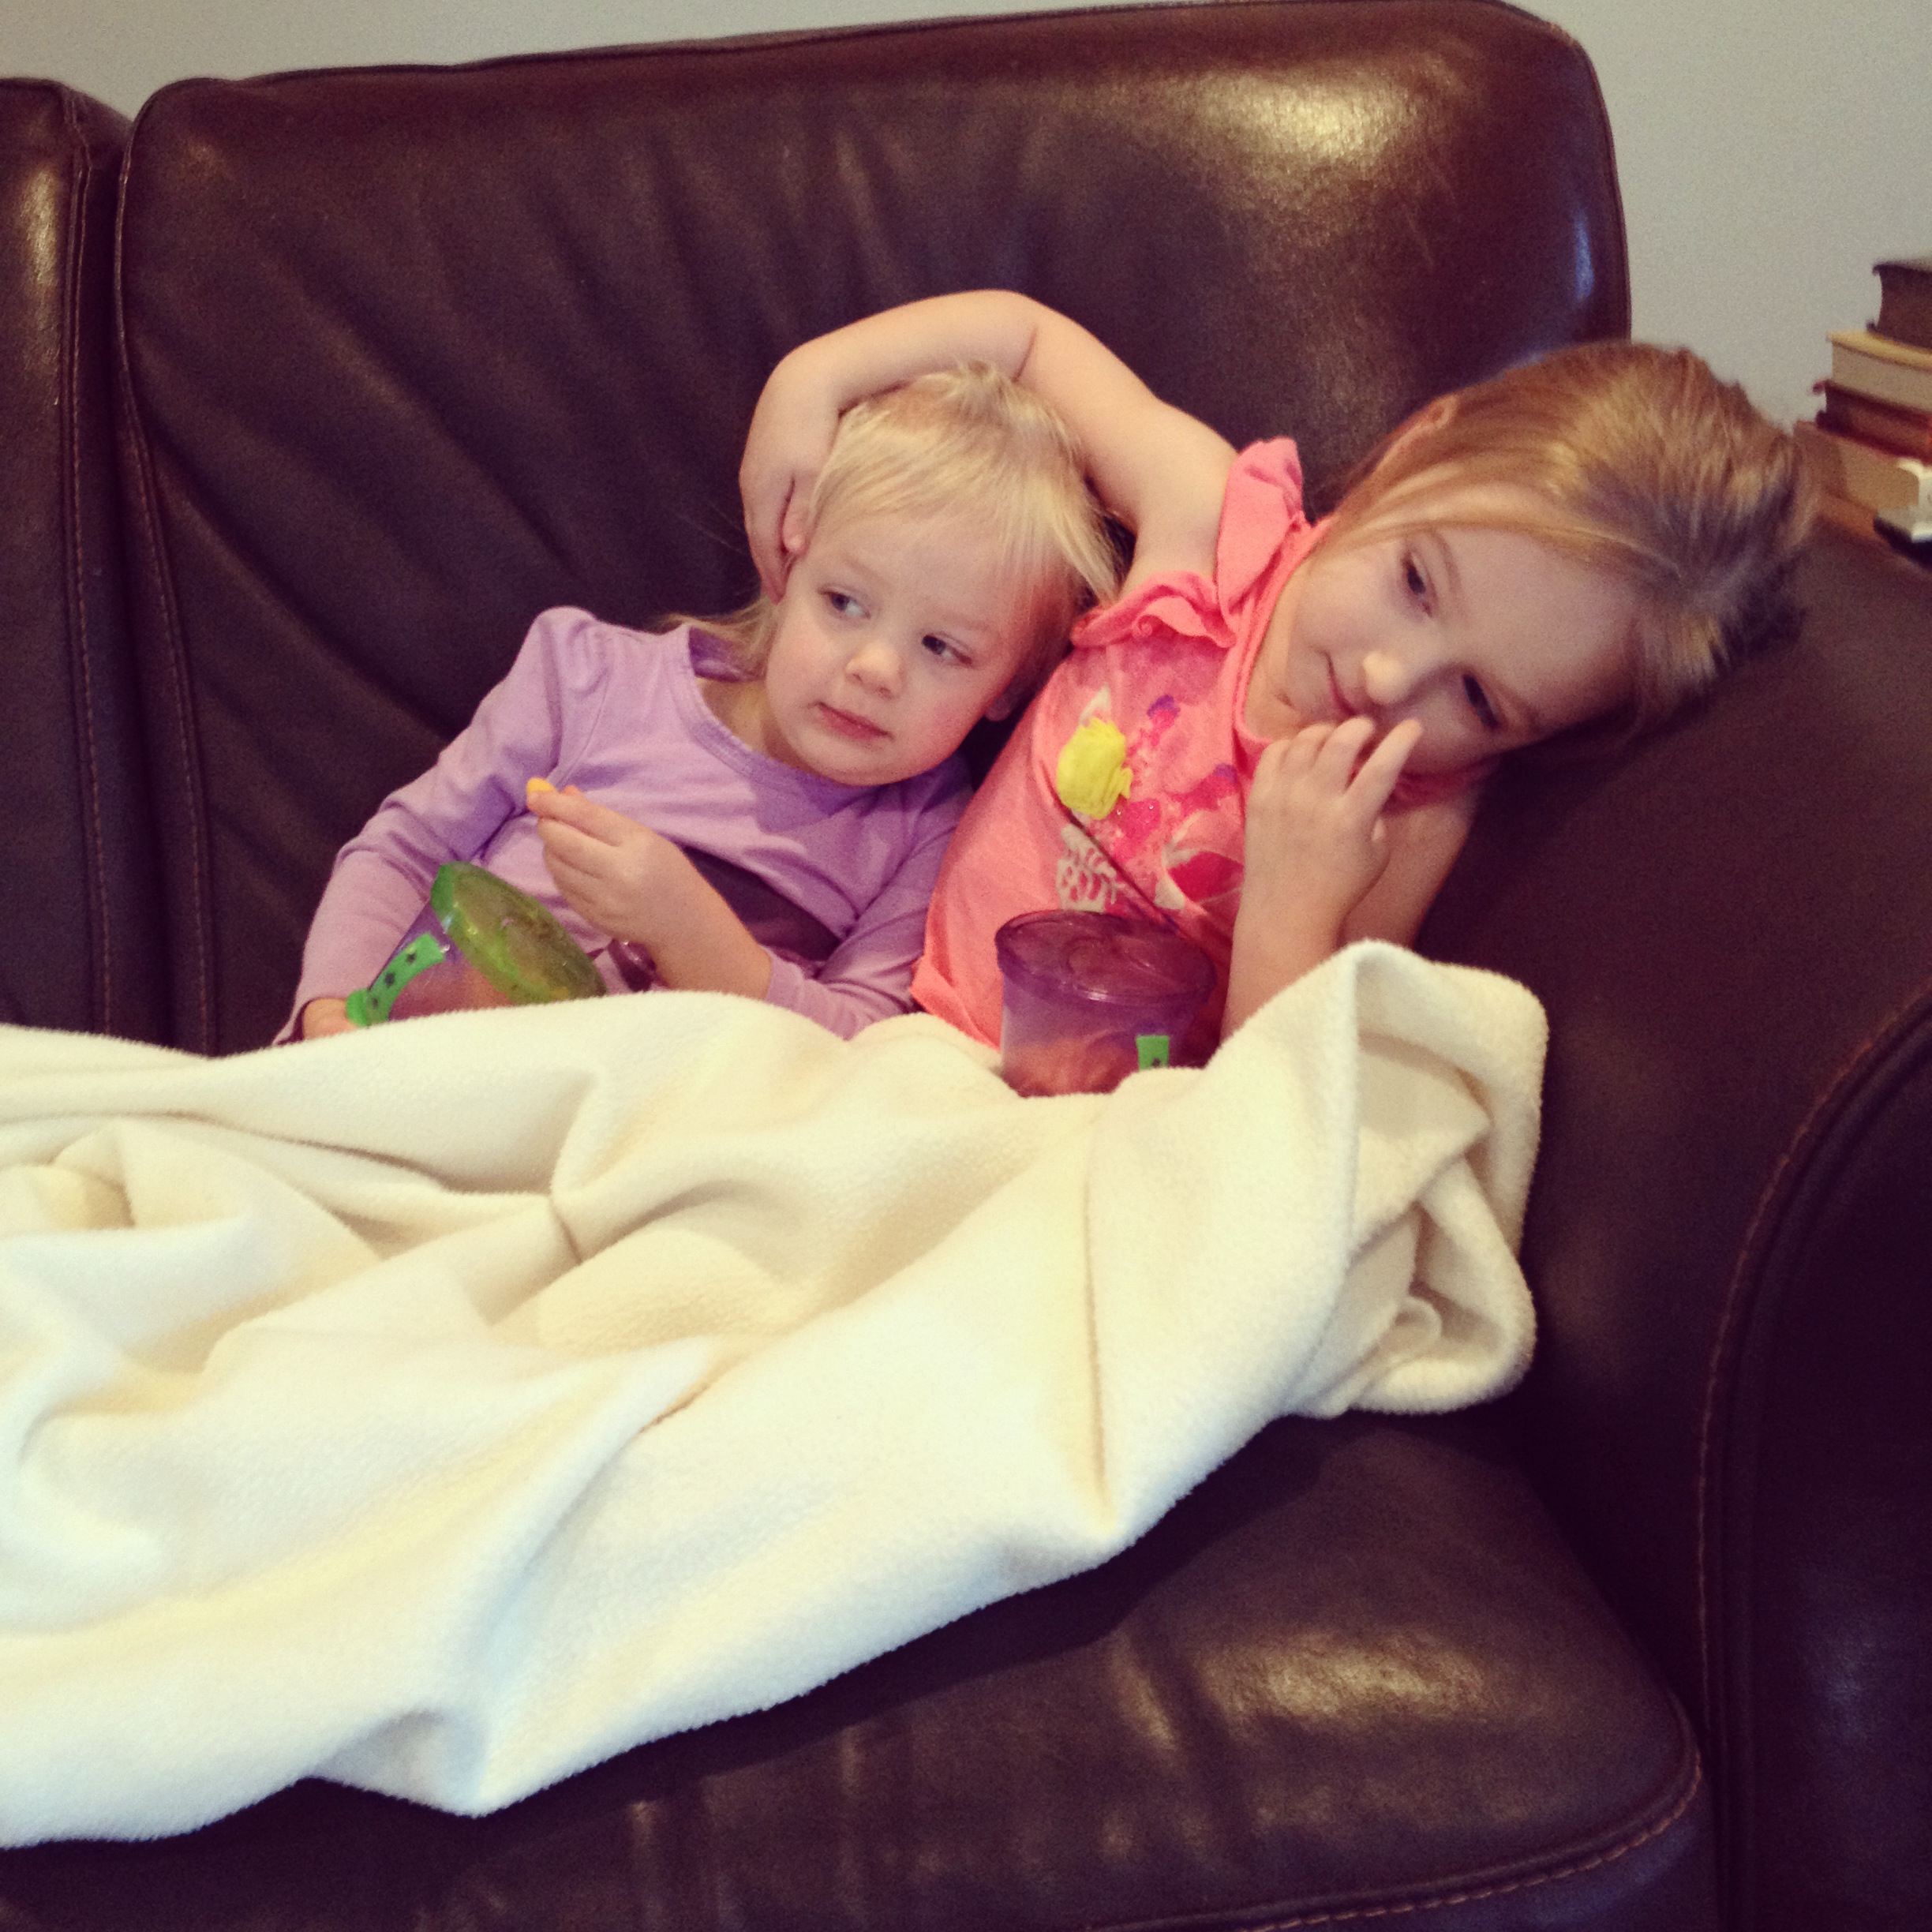 Liv instructing Eliza to rest. With her arm. Wonder where she gets that...